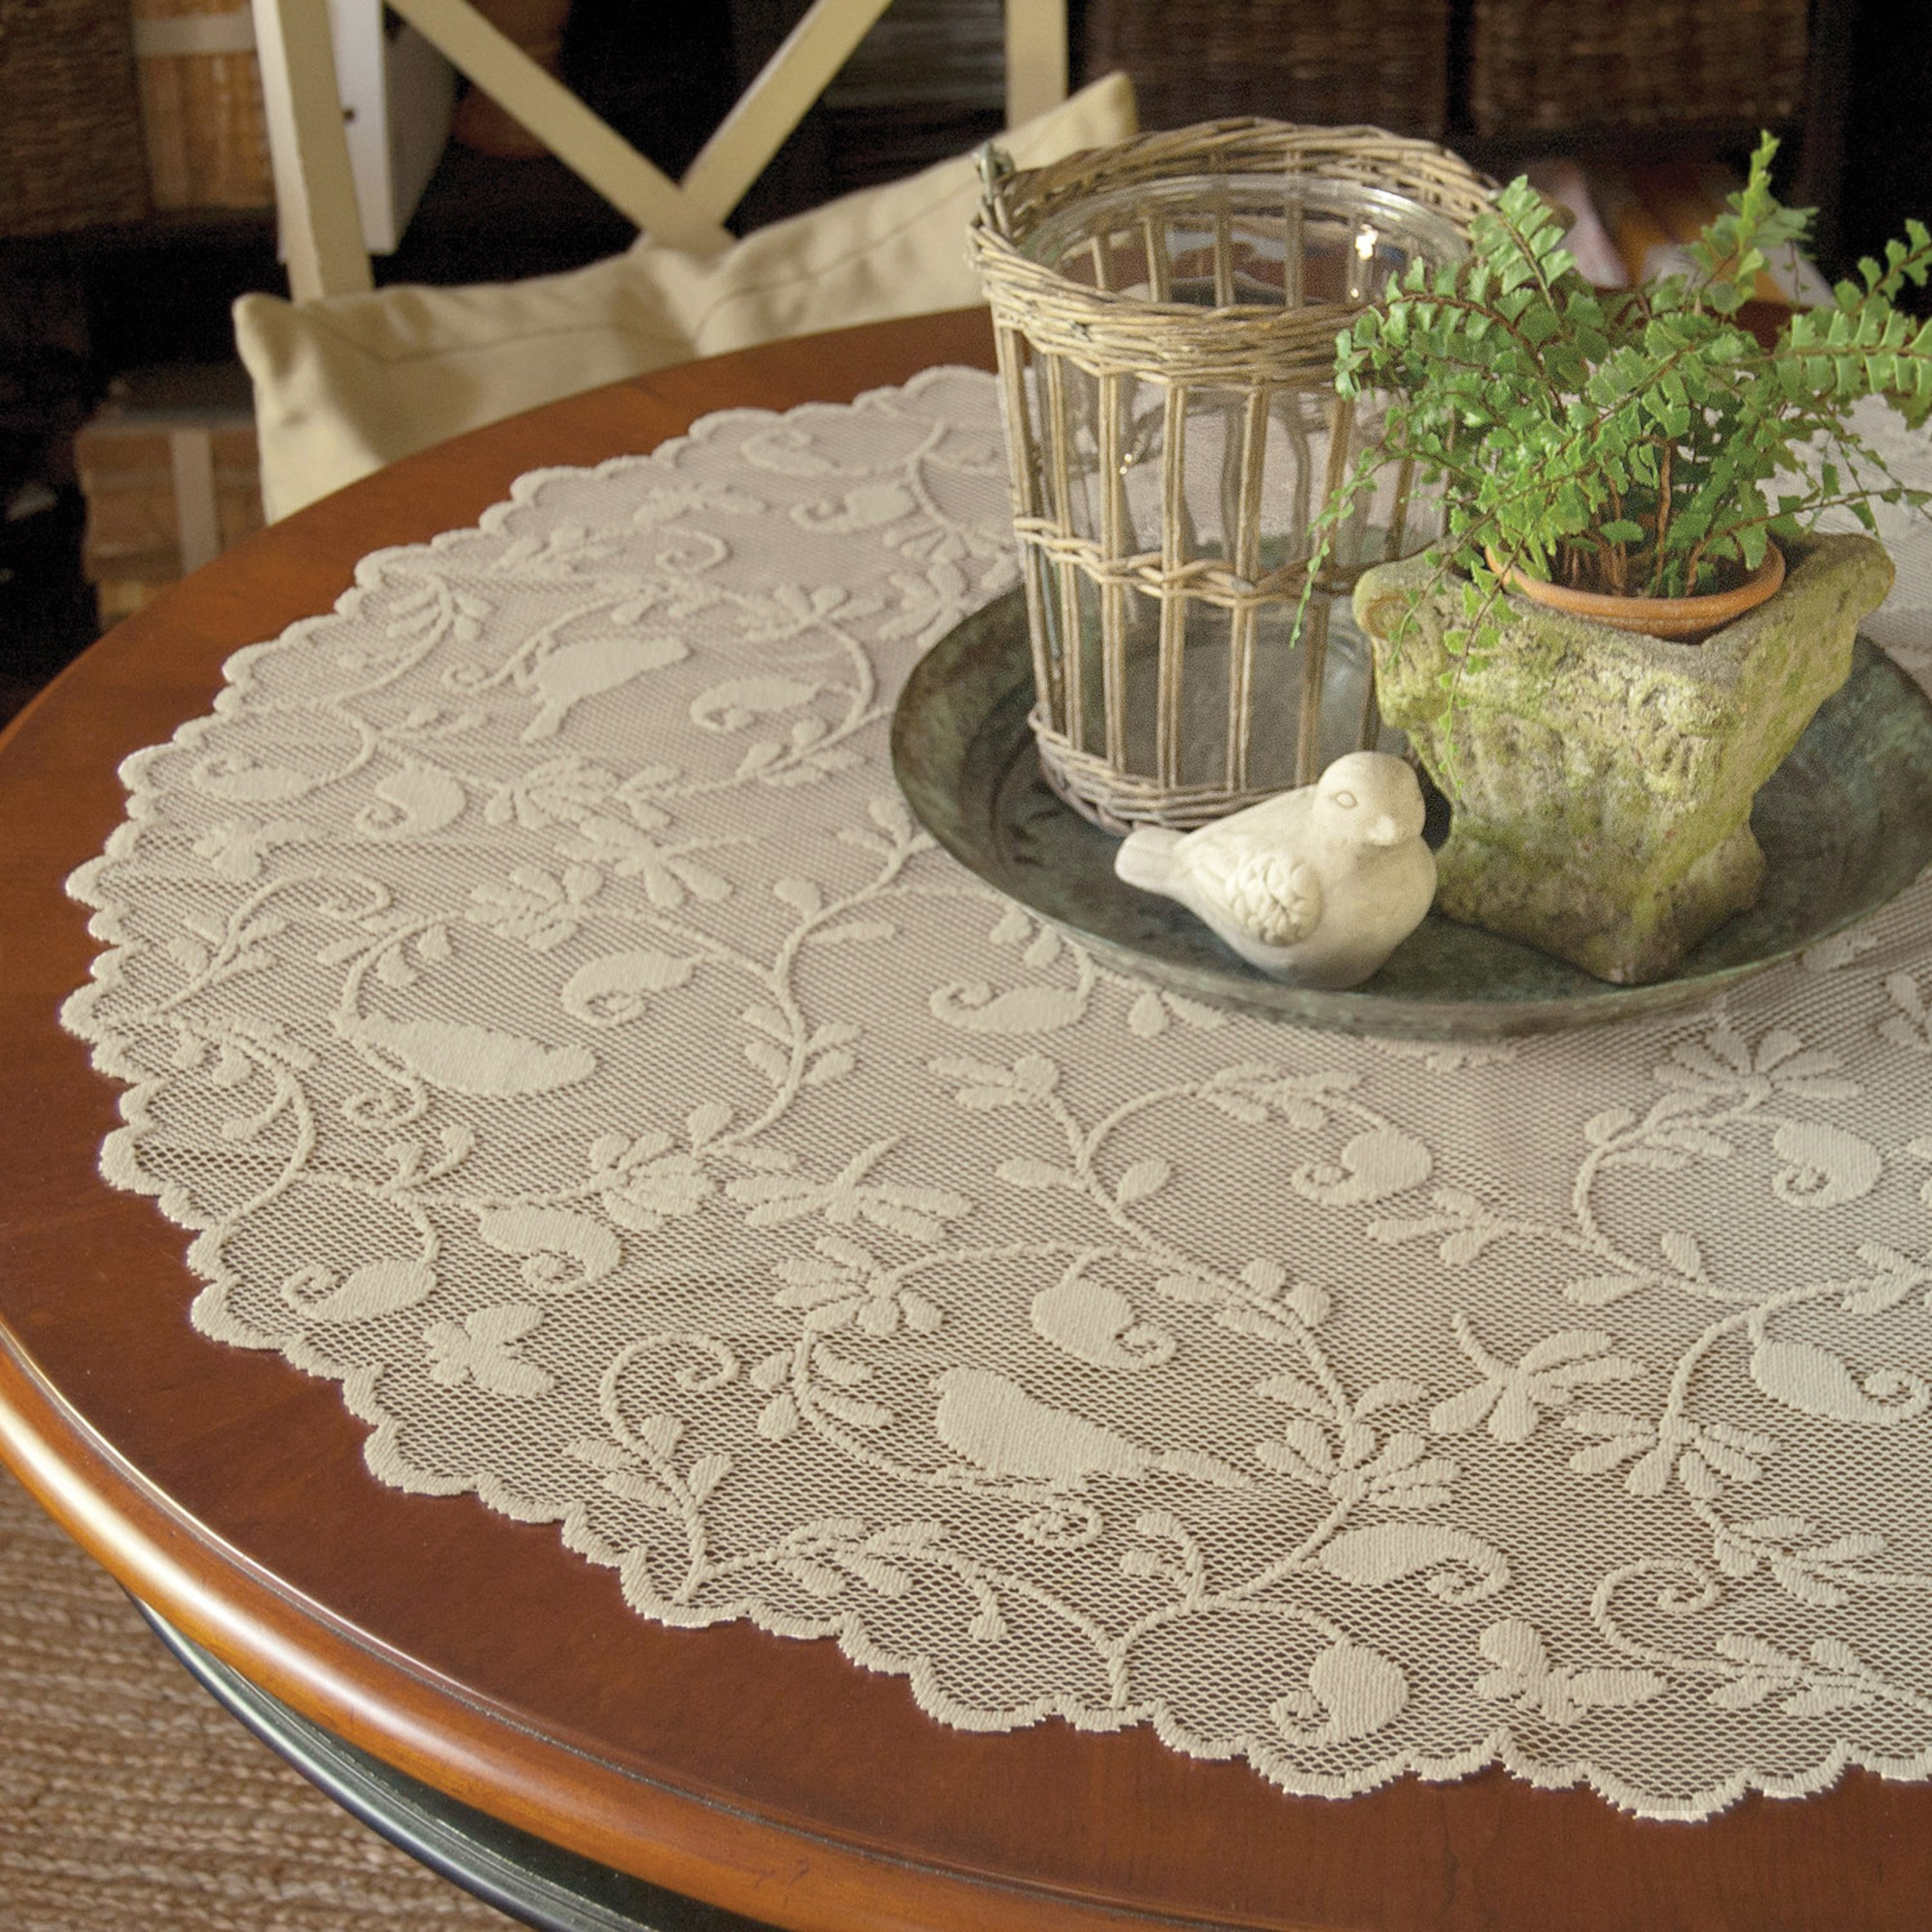 garden birds lace tabletop accents sheer doily style decorative table topper lifestyle accent placemat and chairs giant patio umbrella corner entryway furniture ethan allen